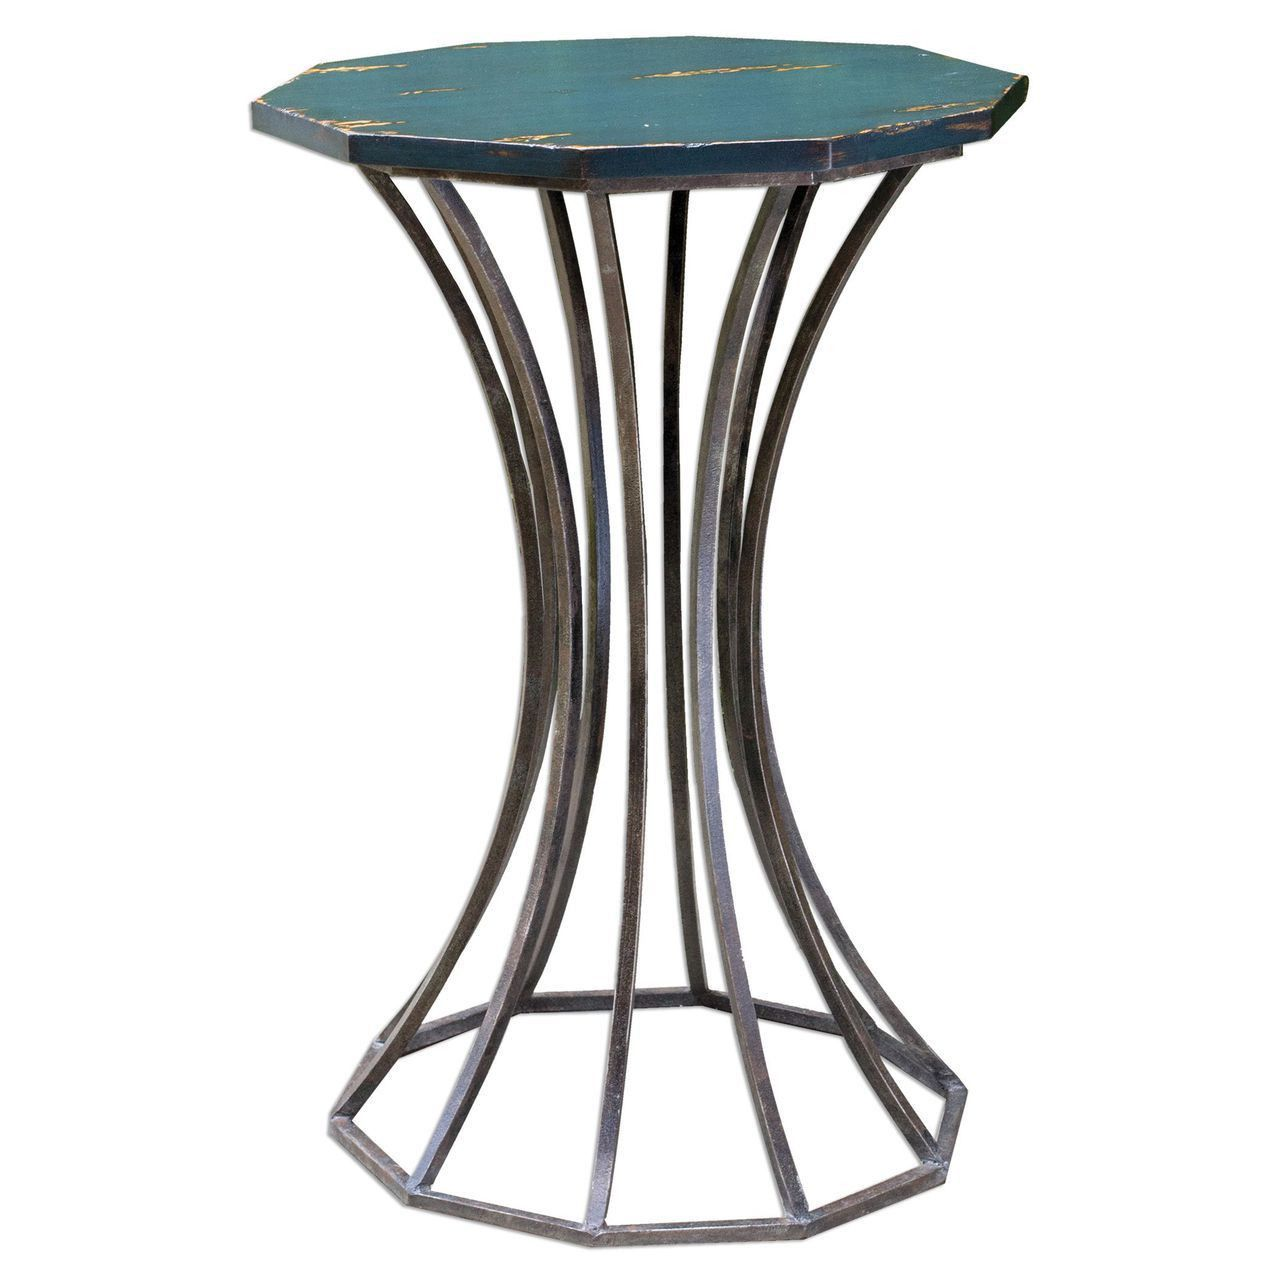 uttermost vika navy blue accent table products reclaimed wood coffee narrow patio modern console end tables outdoor sofa white lamp base black glass target threshold furniture